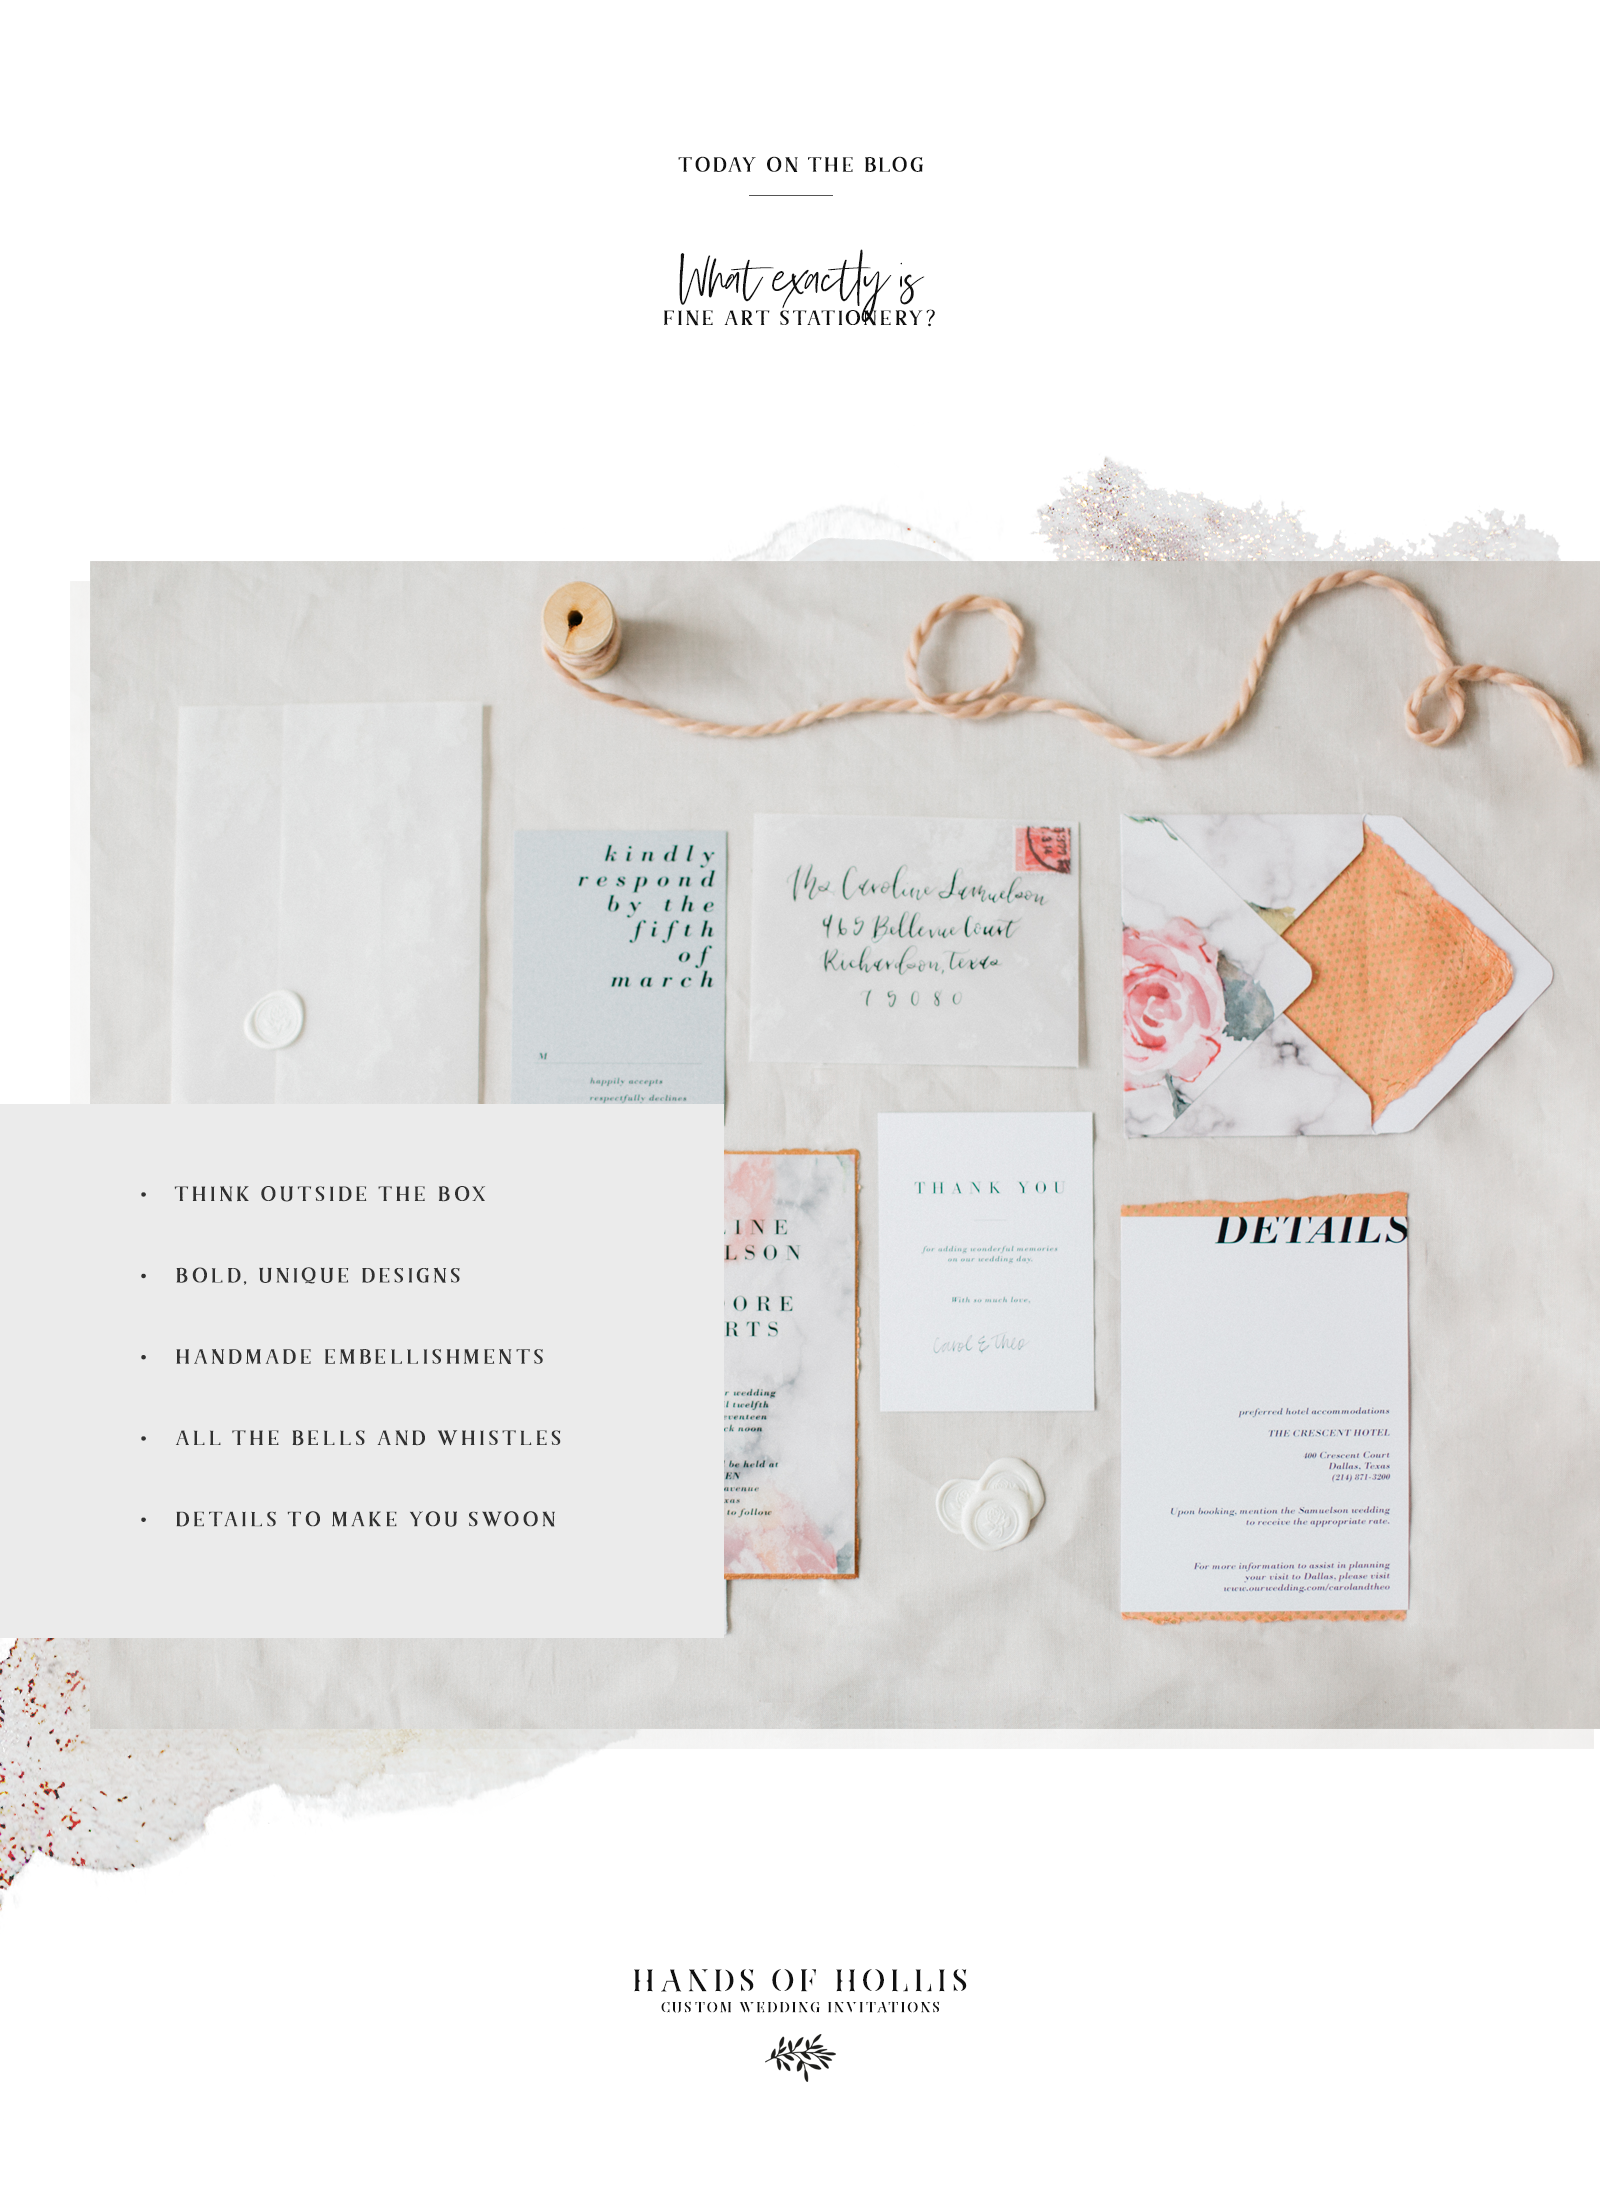 What exactly is fine art stationery and custom wedding invitations from Hands of Hollis in Dallas, Texas